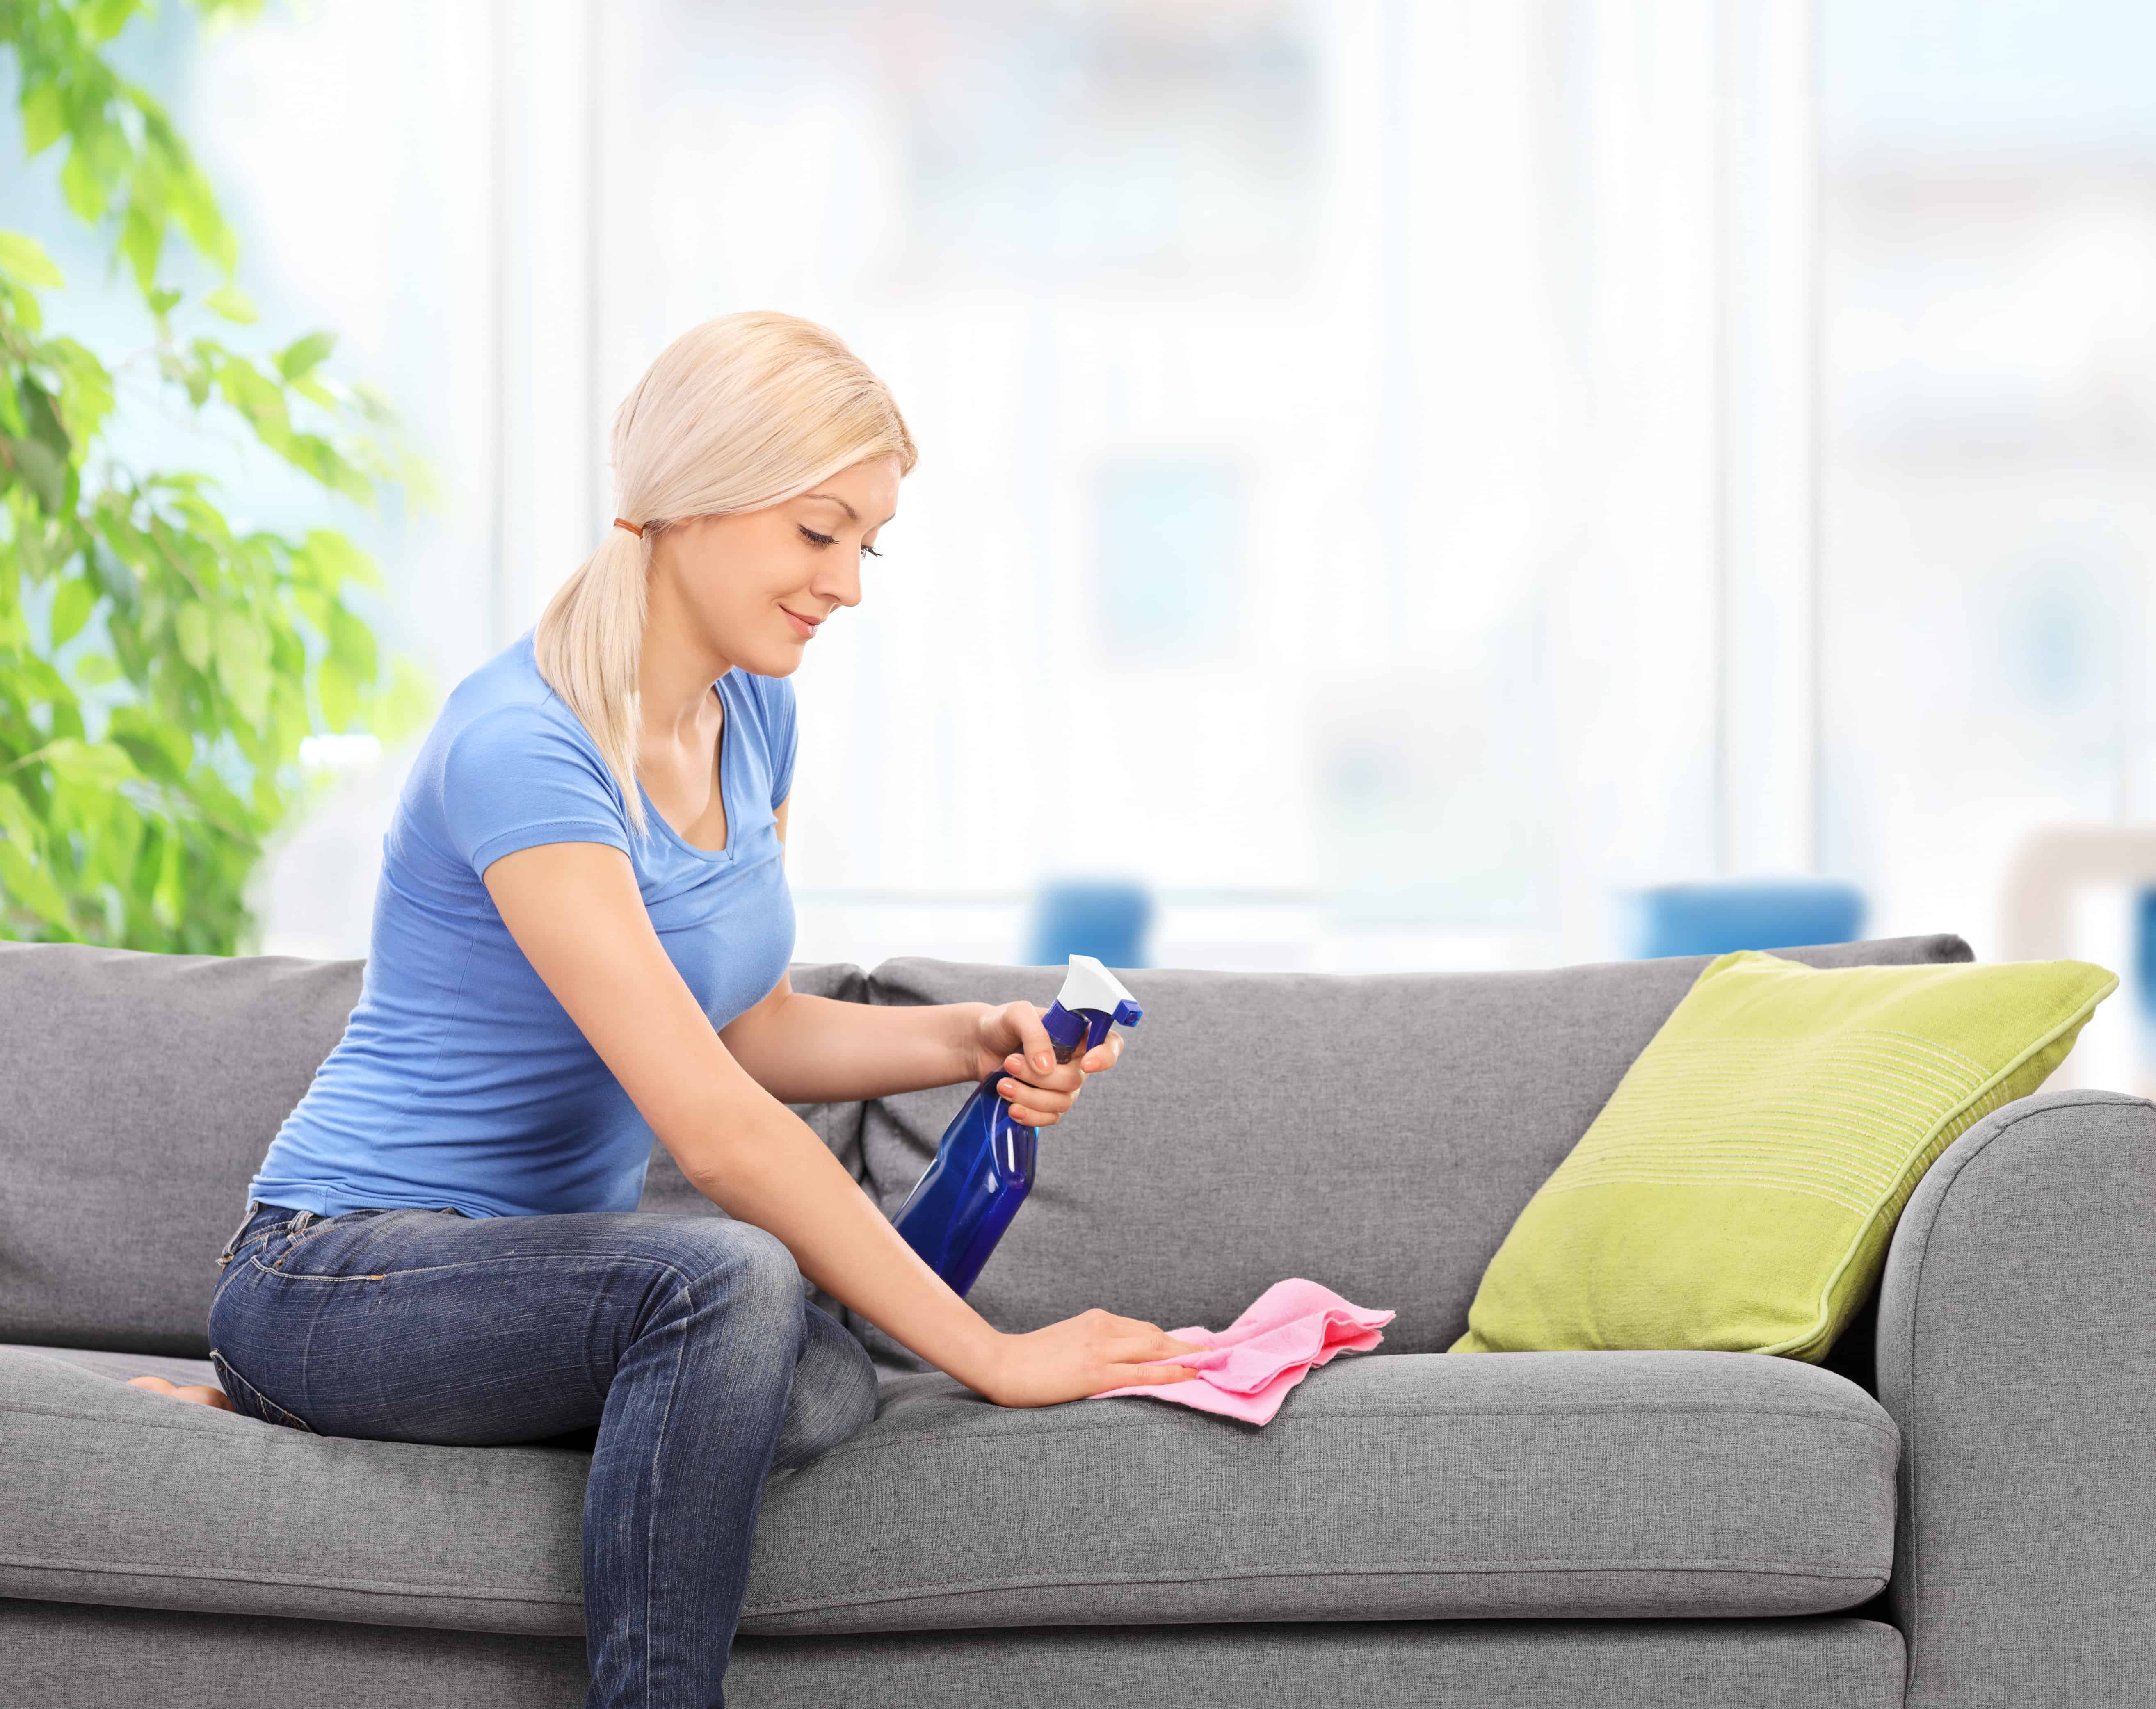 How To Clean A Microfiber Couch The Organized Mom